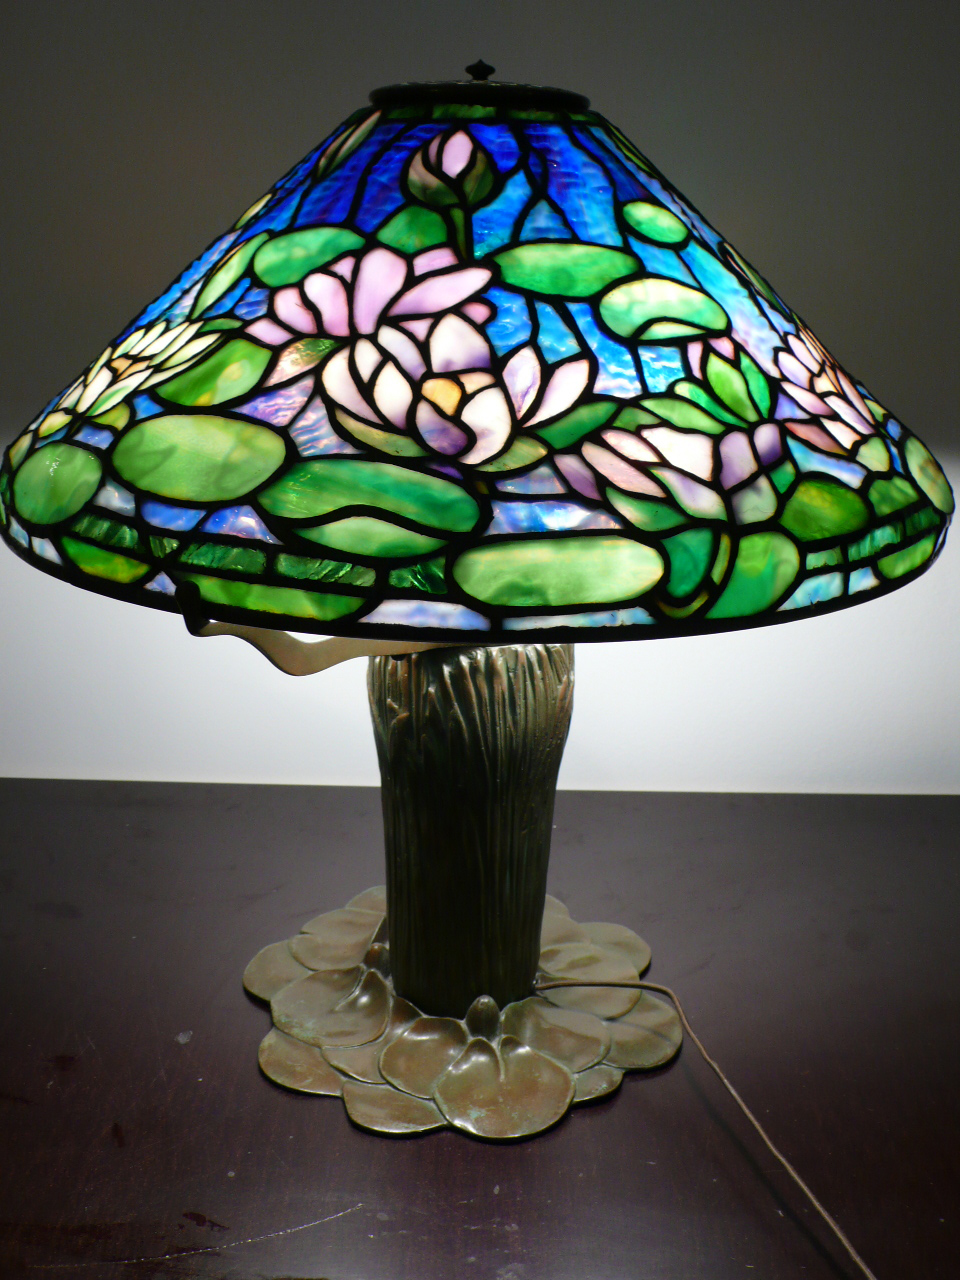 Invigorating Making A Stained Glass Tiffany Lamp Tiffany Stained Glass Lamps Reasons To Buy Warisan Lighting Stained Glass Lampshade Stained Glass Lamps Ebay houzz-03 Stained Glass Lamps